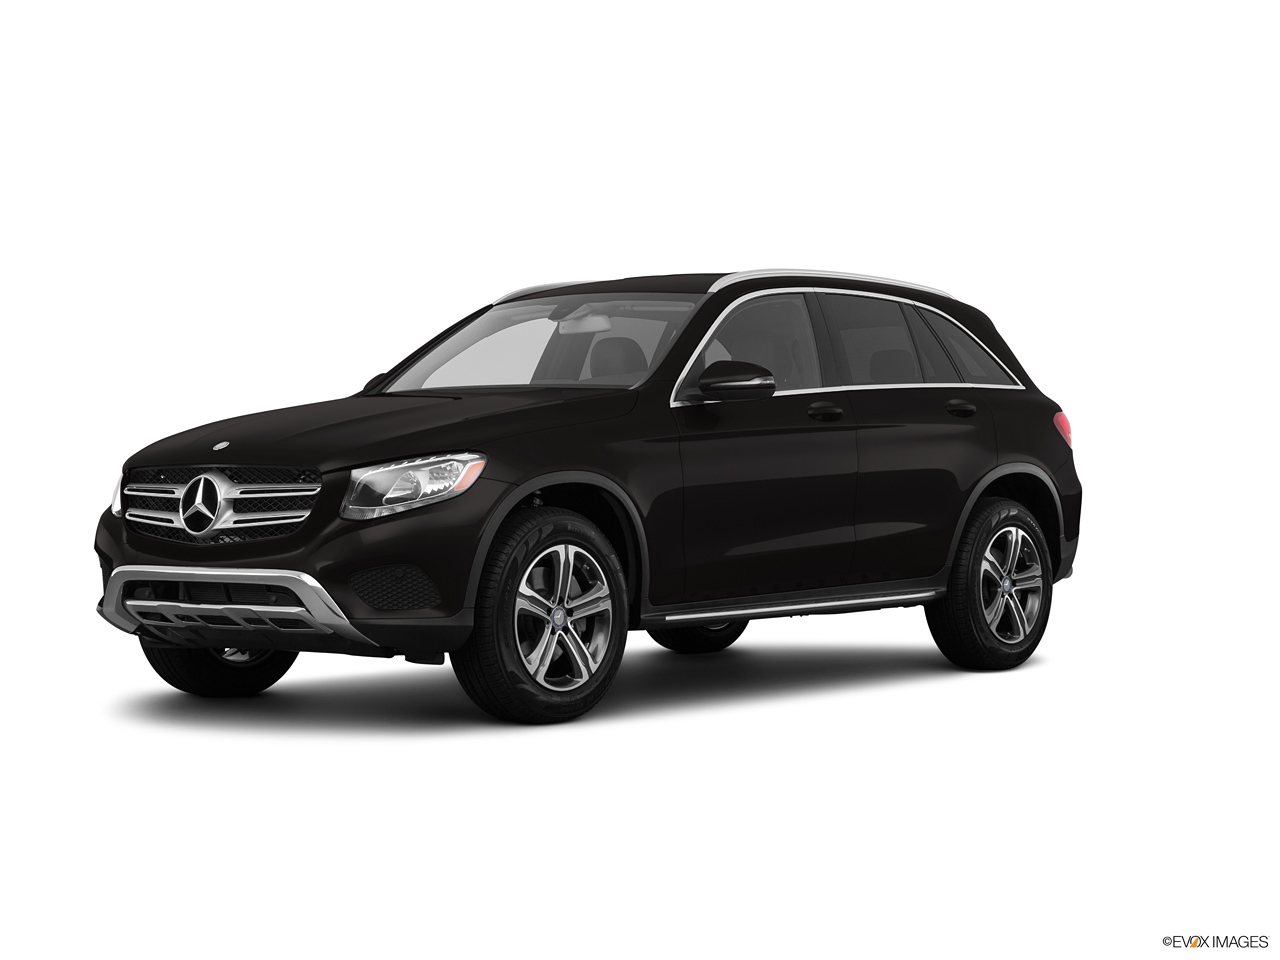 Car pictures list for mercedes benz glc class 2016 glc 250 for Mercedes benz vehicles list